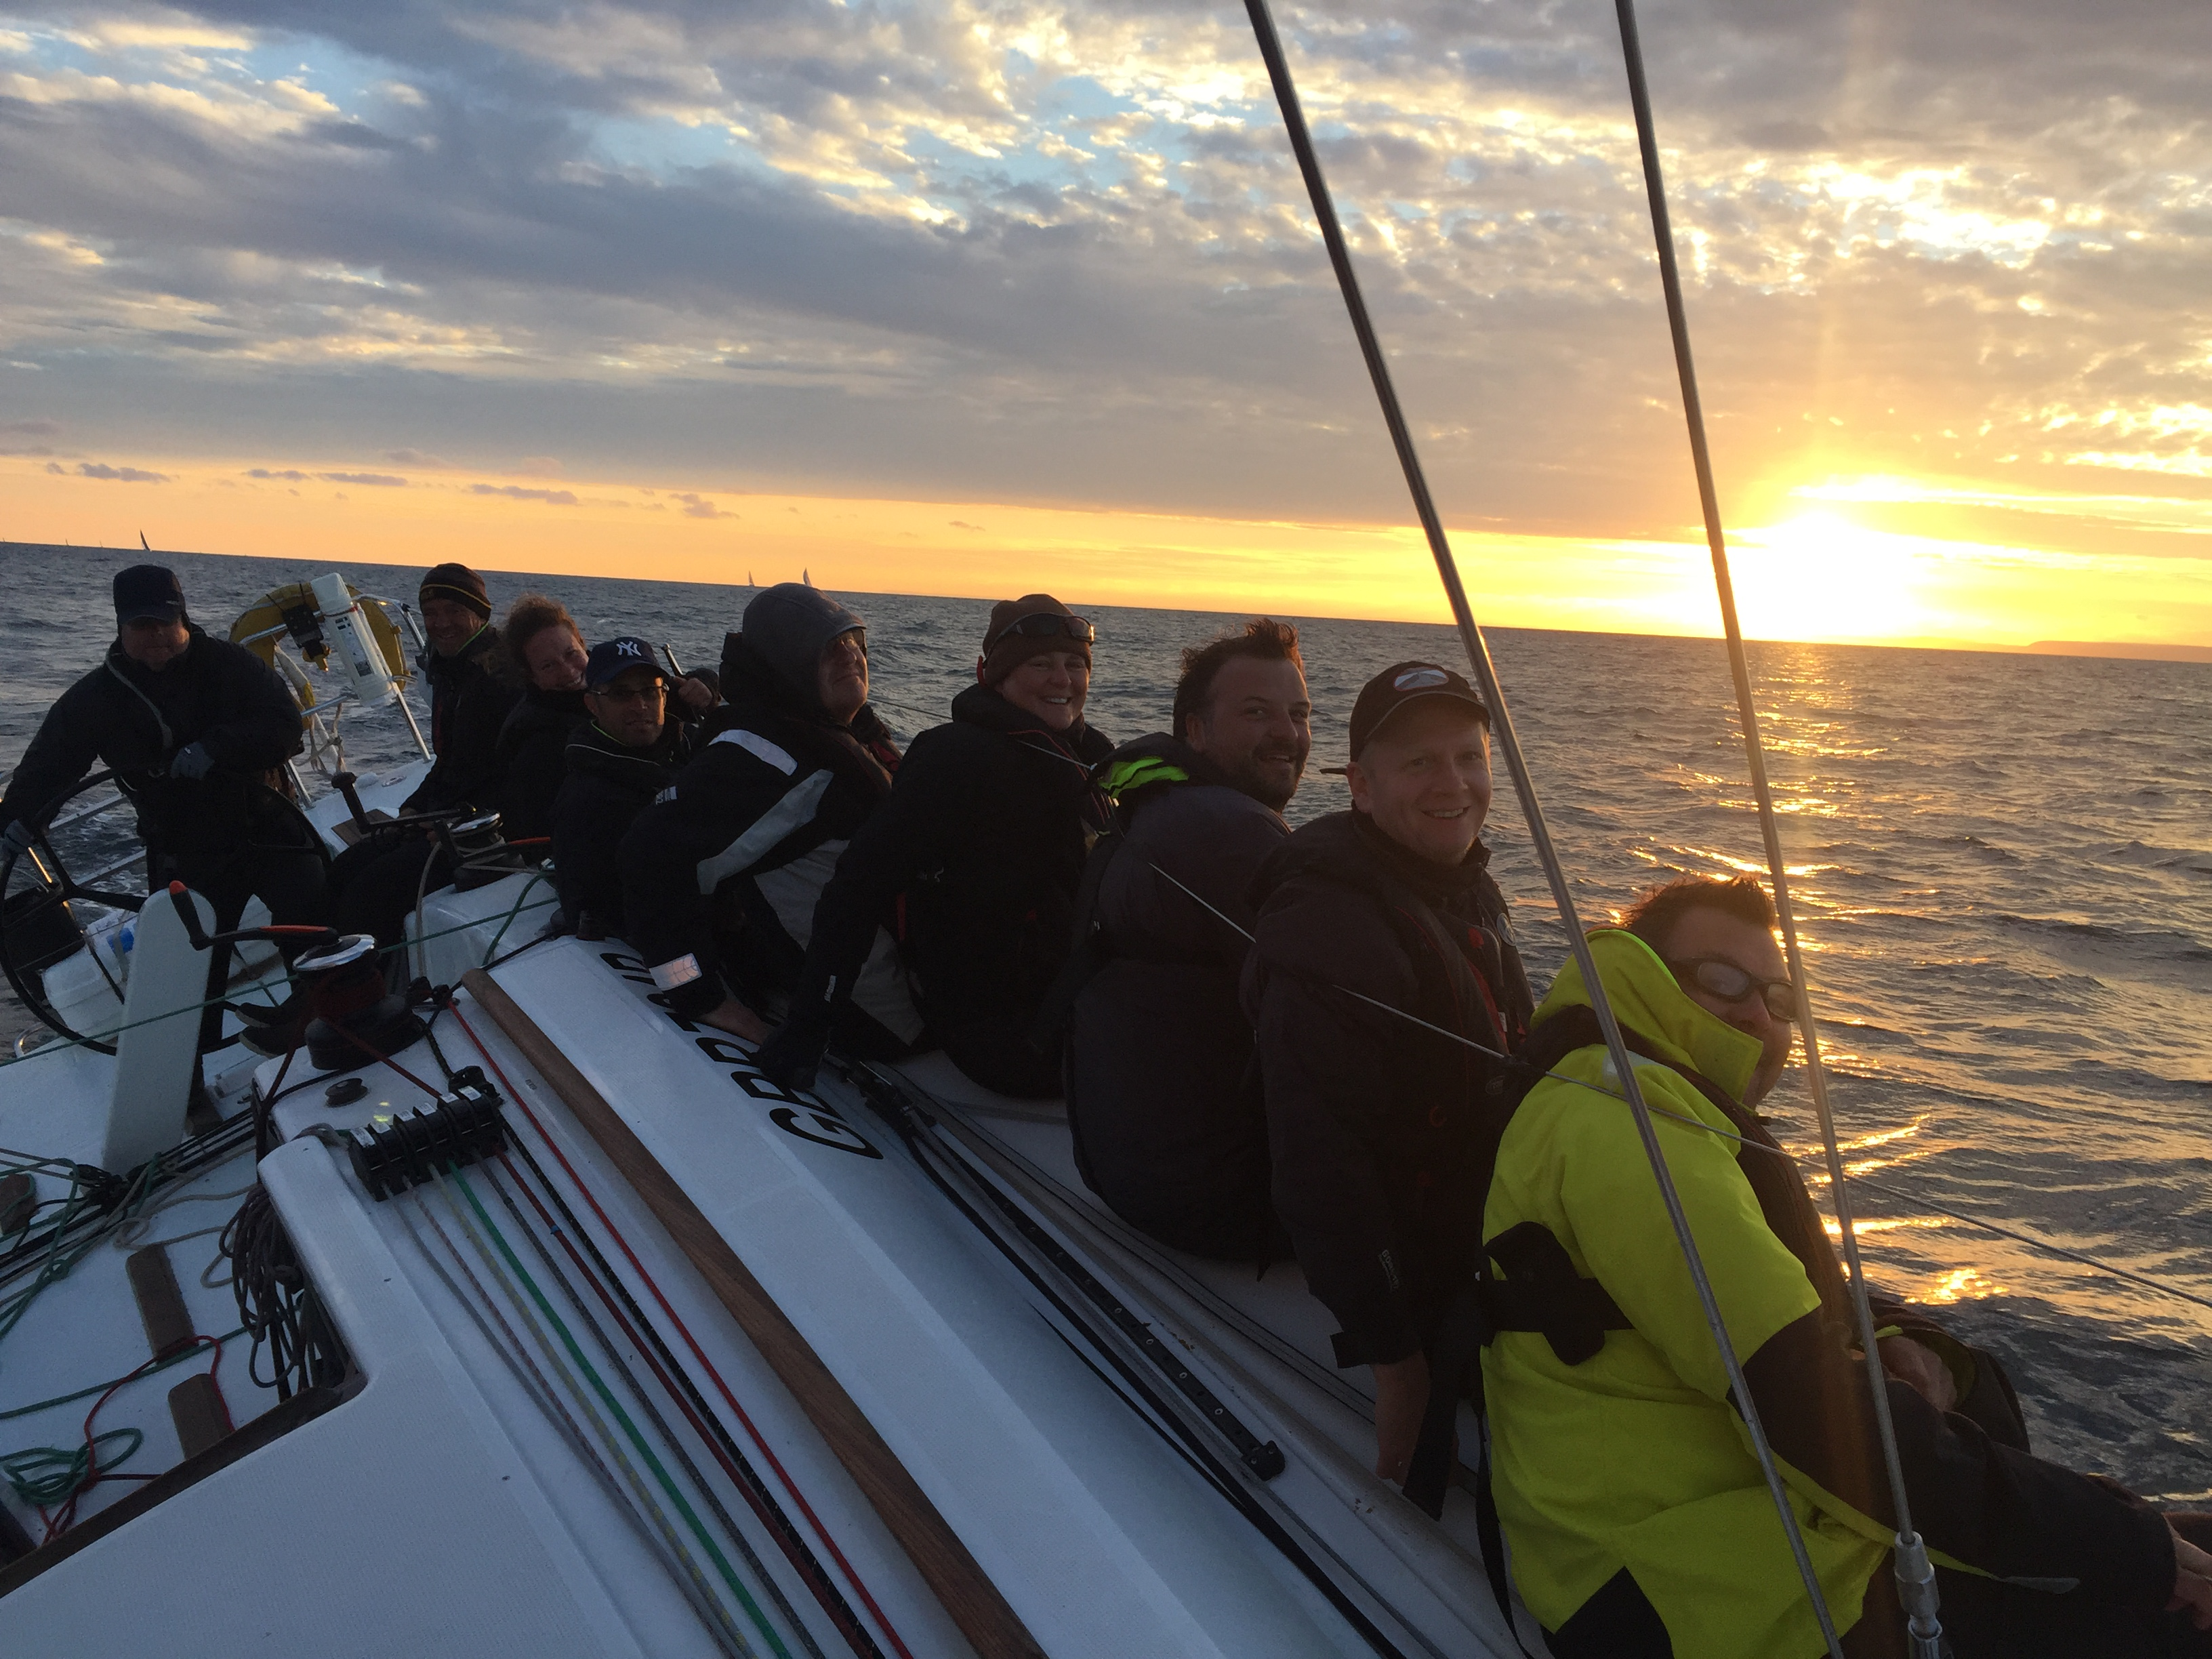 FASTNET 2017: The race around 'The Rock'